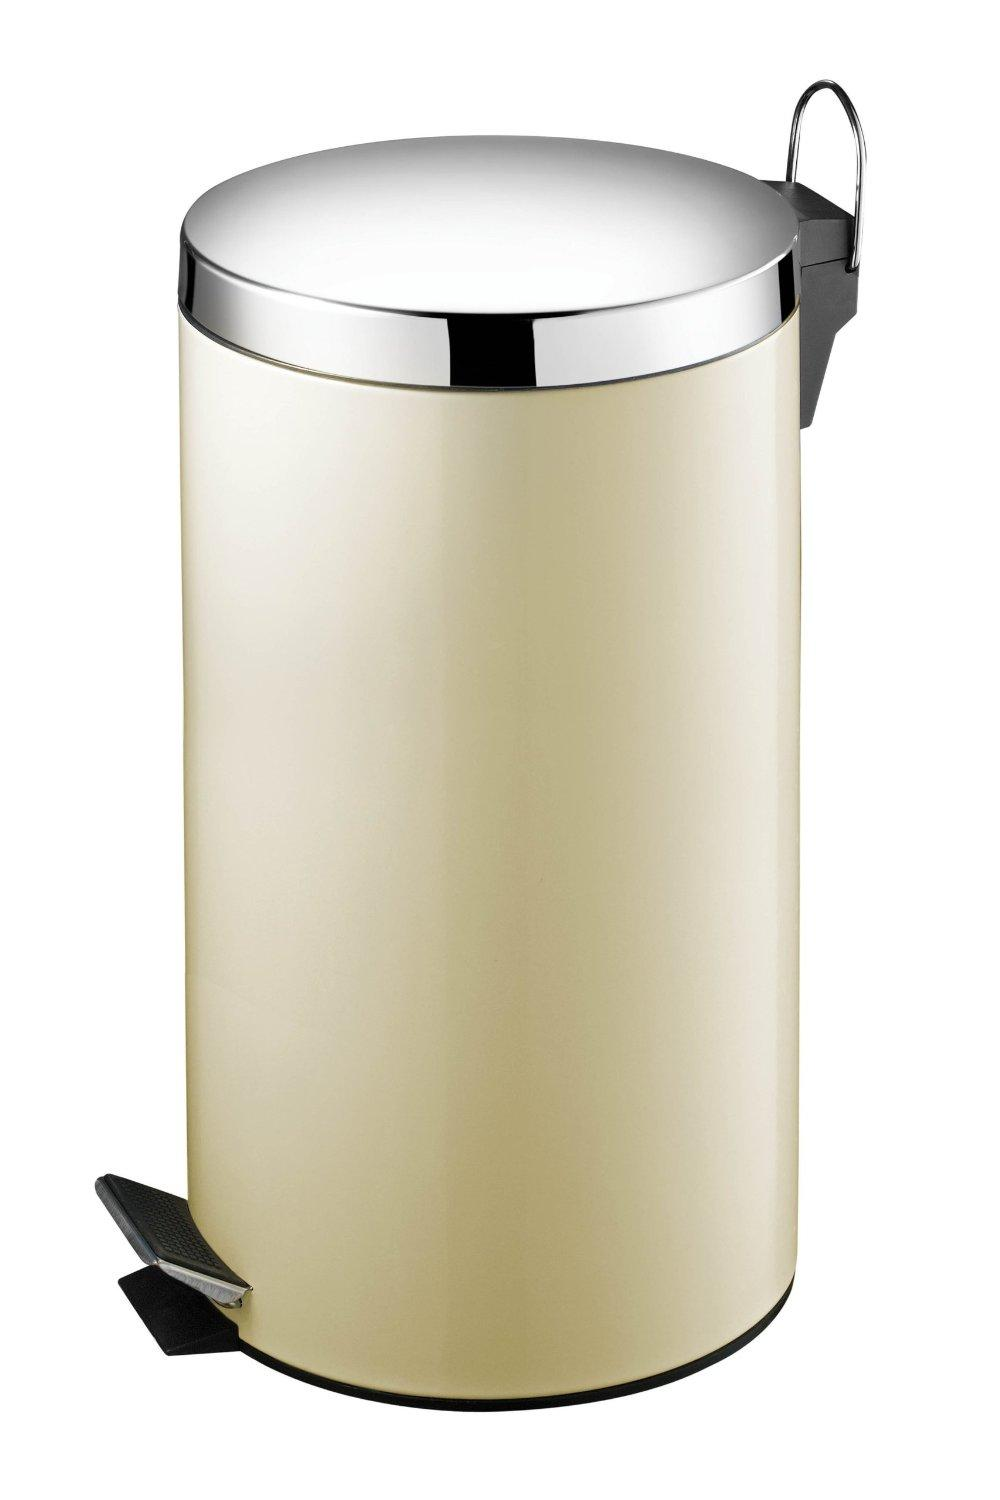 30L Cream Pedal Stainless Steel Bin Litre With Inner Plastic Bucket - W30 X H65